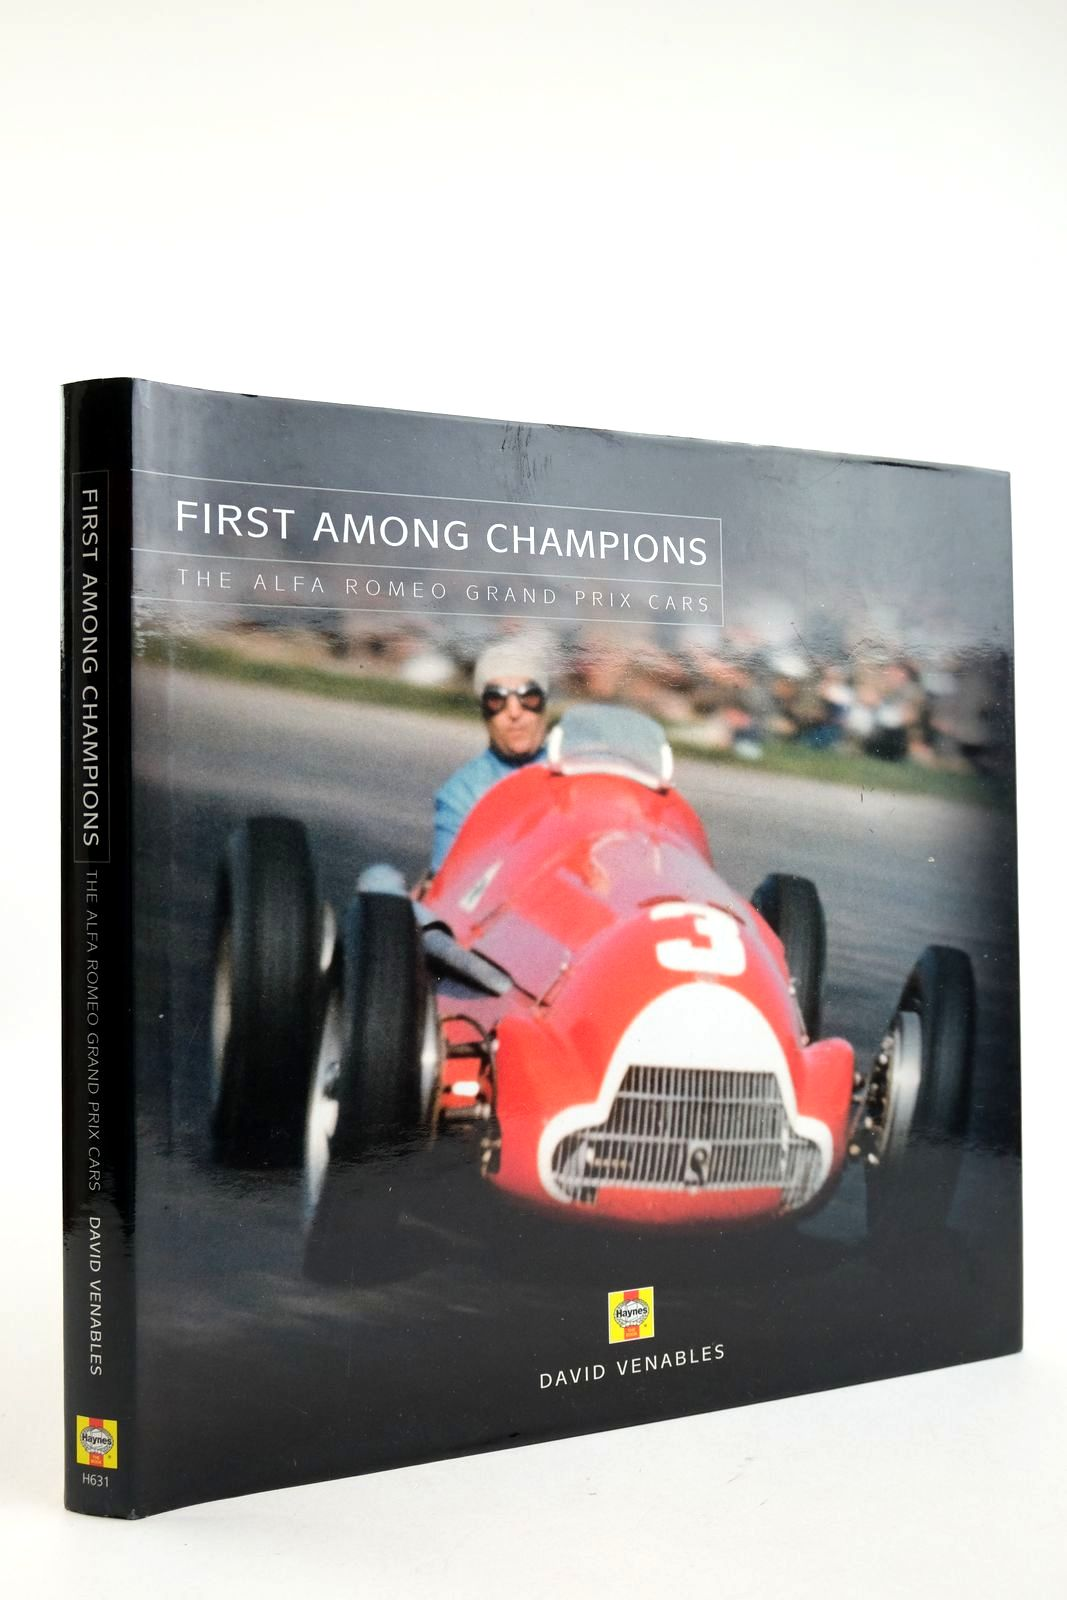 Photo of FIRST AMONG CHAMPIONS written by Venables, David published by Haynes Publishing Group (STOCK CODE: 2132836)  for sale by Stella & Rose's Books